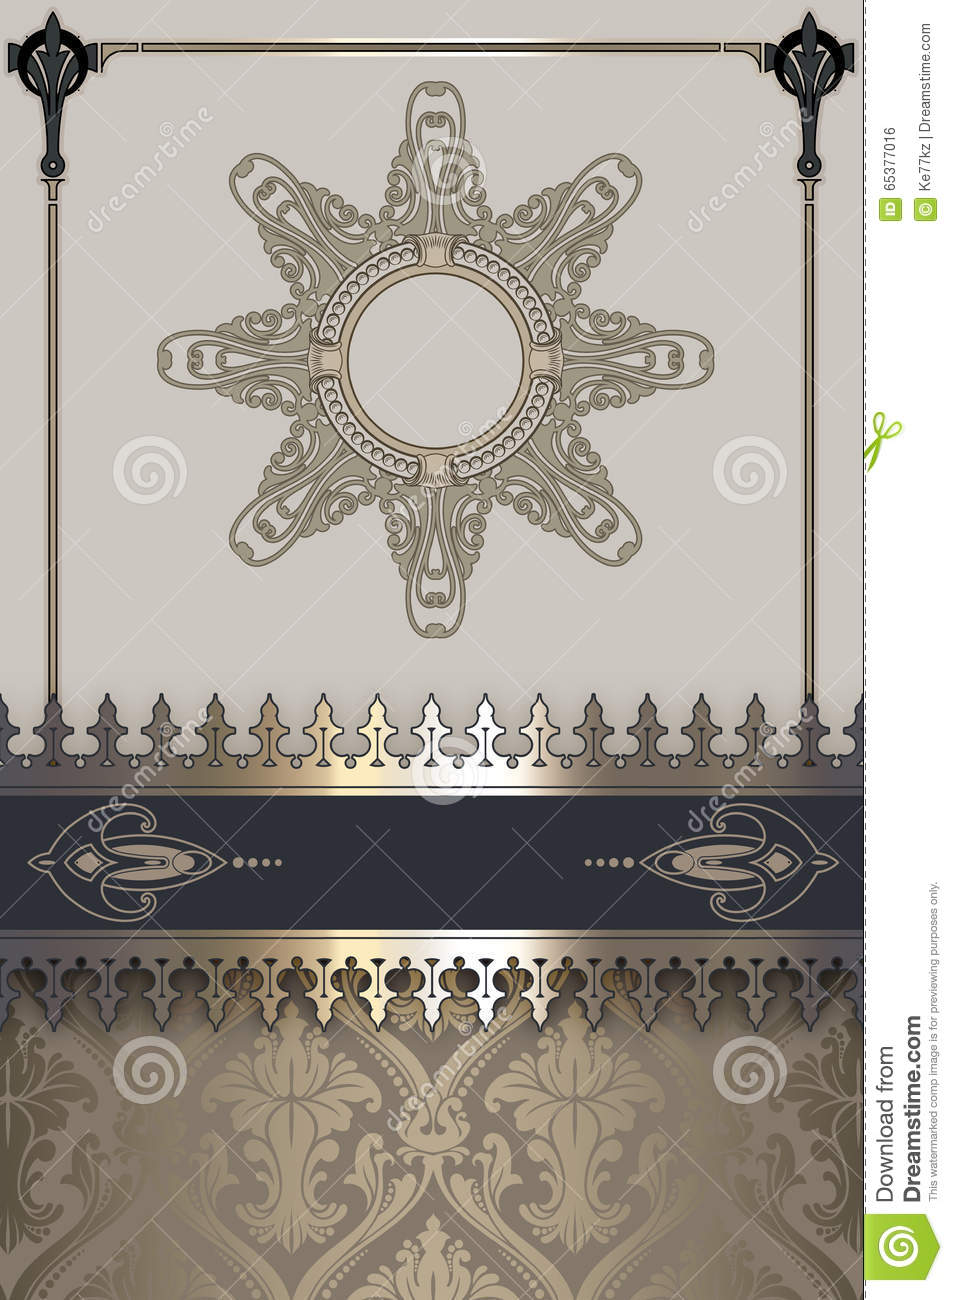 Vintage Decorative Book Cover : Vintage background with frame and decorative border stock